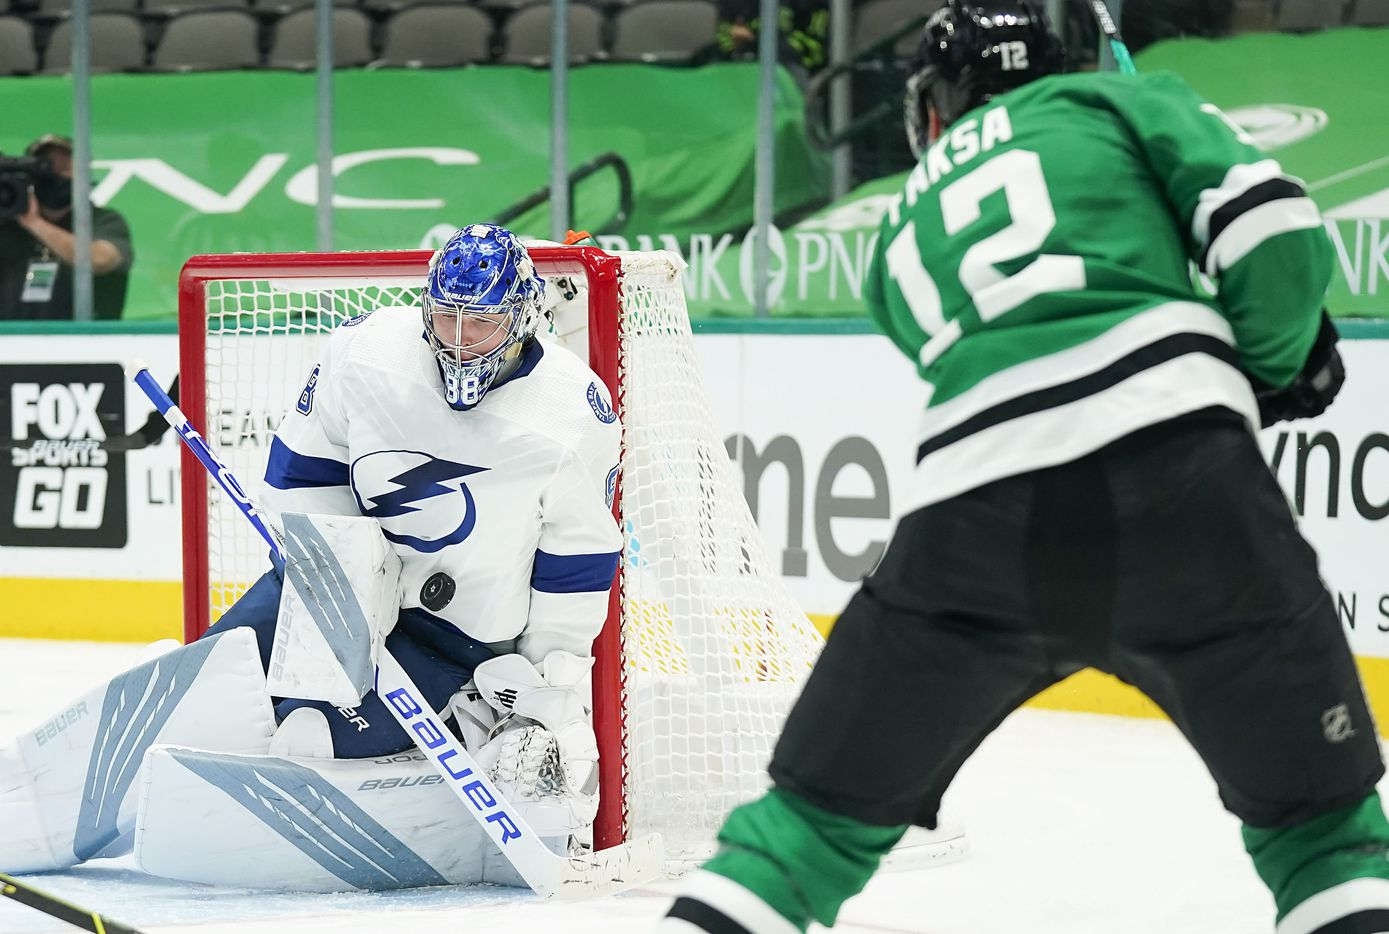 Tampa Bay Lightning goaltender Andrei Vasilevskiy (88) makes a save on a shot by Dallas Stars center Radek Faksa (12) during the third period of an NHL hockey game at the American Airlines Center on Thursday, March 25, 2021, in Dallas. The Stars won the game 4-3. (Smiley N. Pool/The Dallas Morning News)